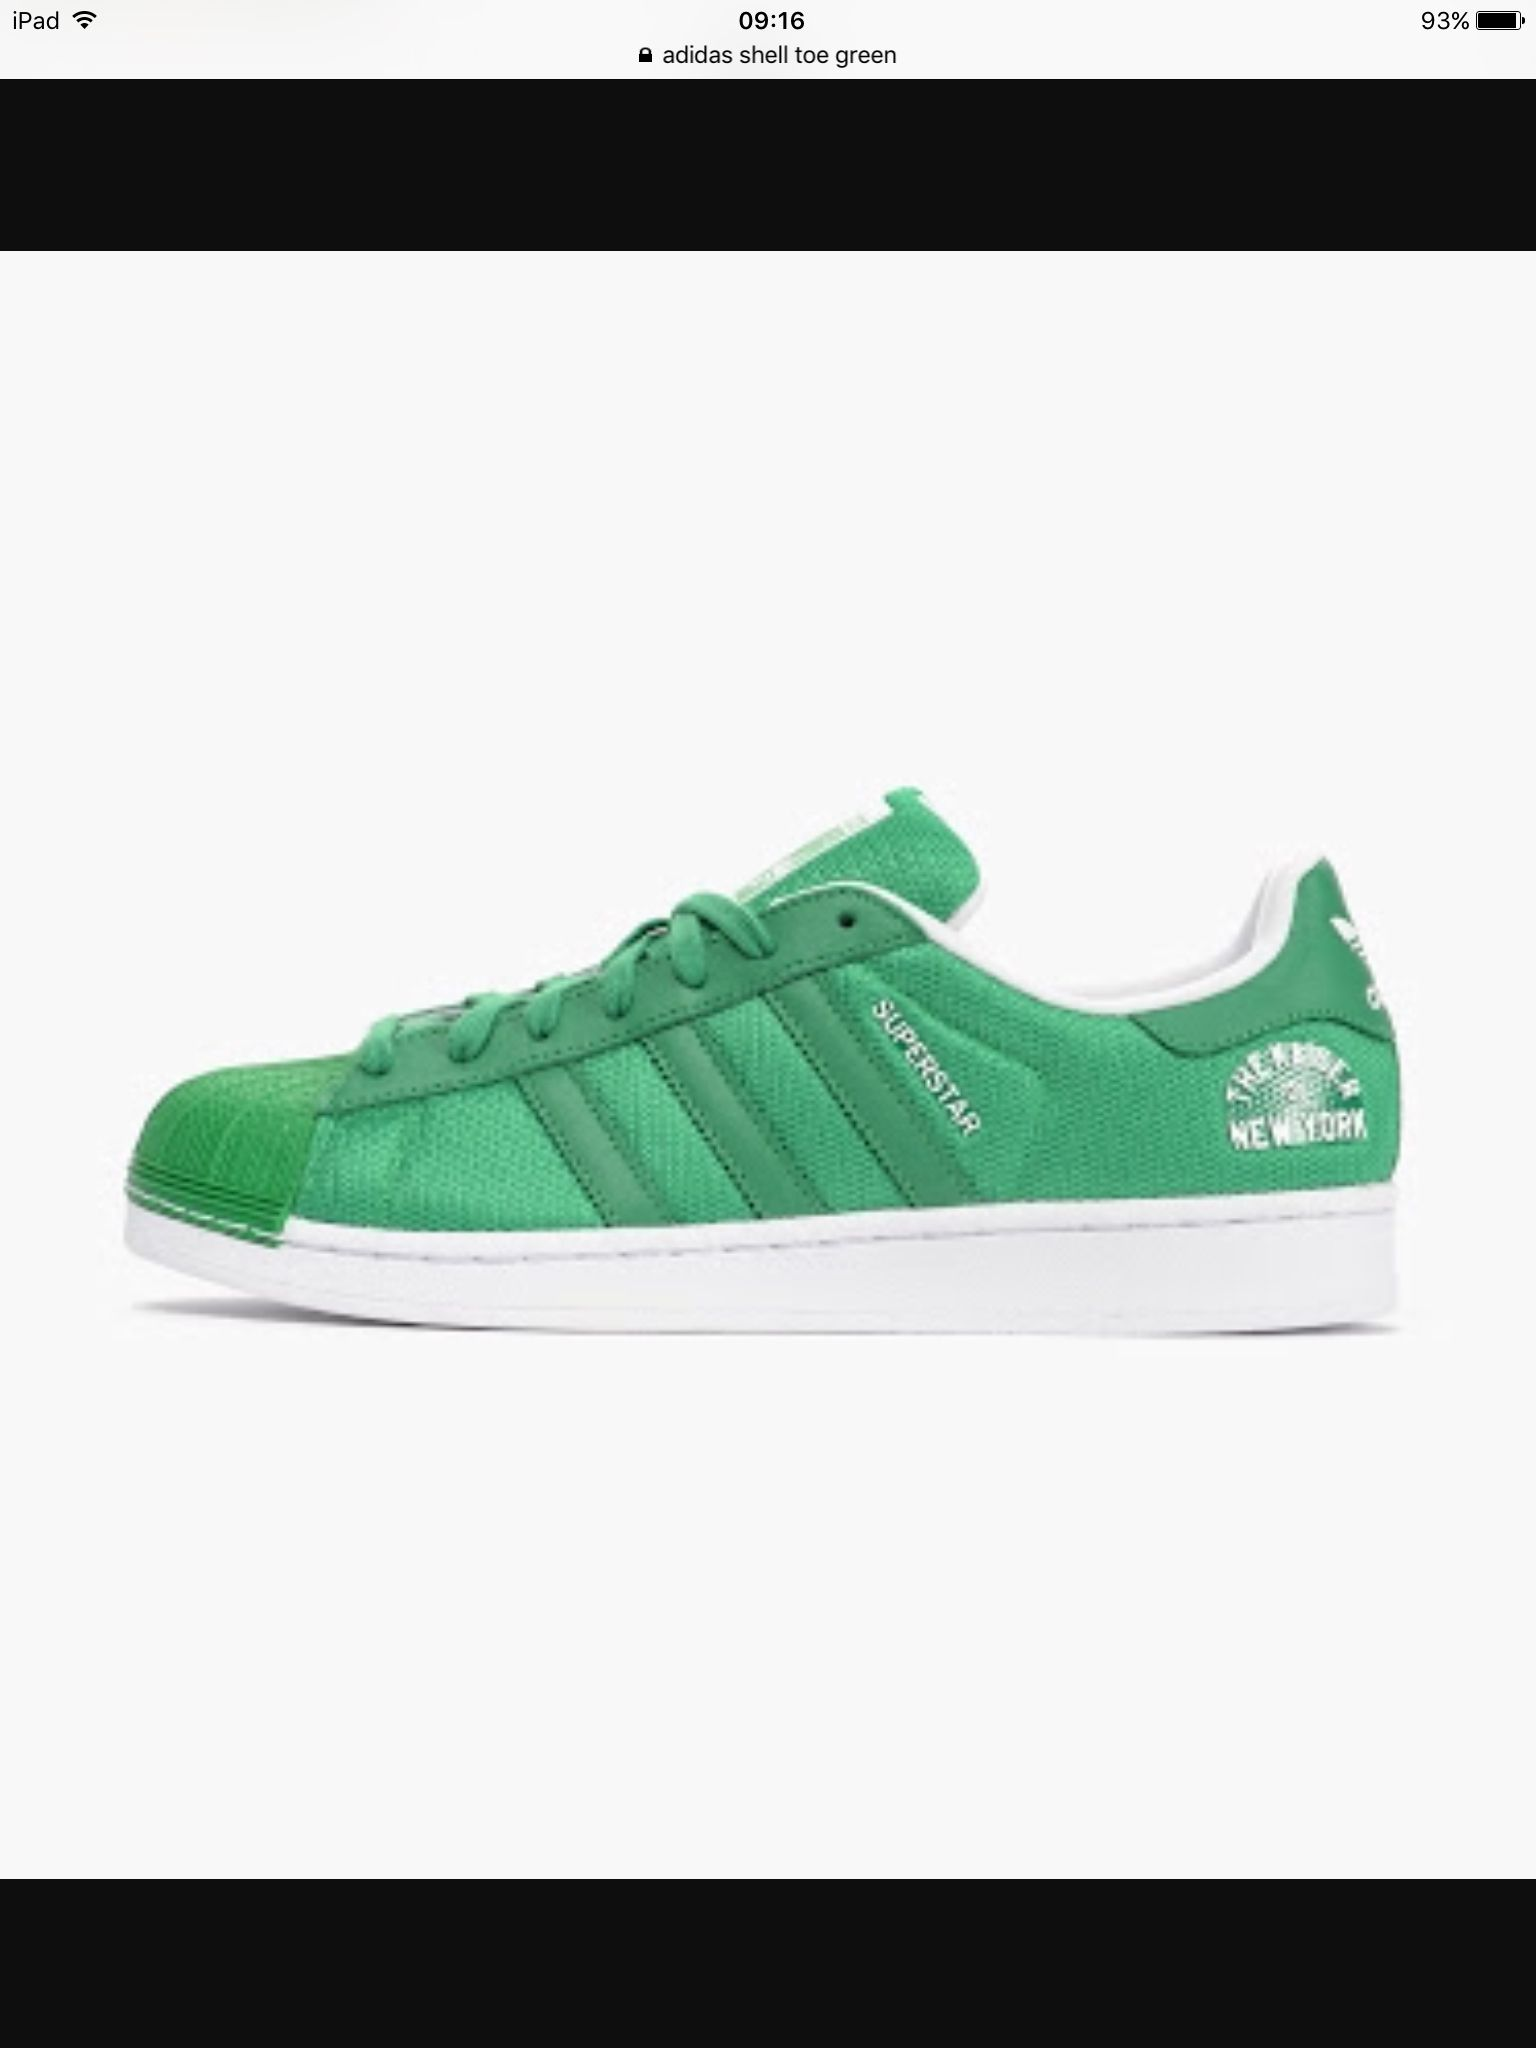 Green Adidas superstar shell toe sneakers | Adidas, Zapas y